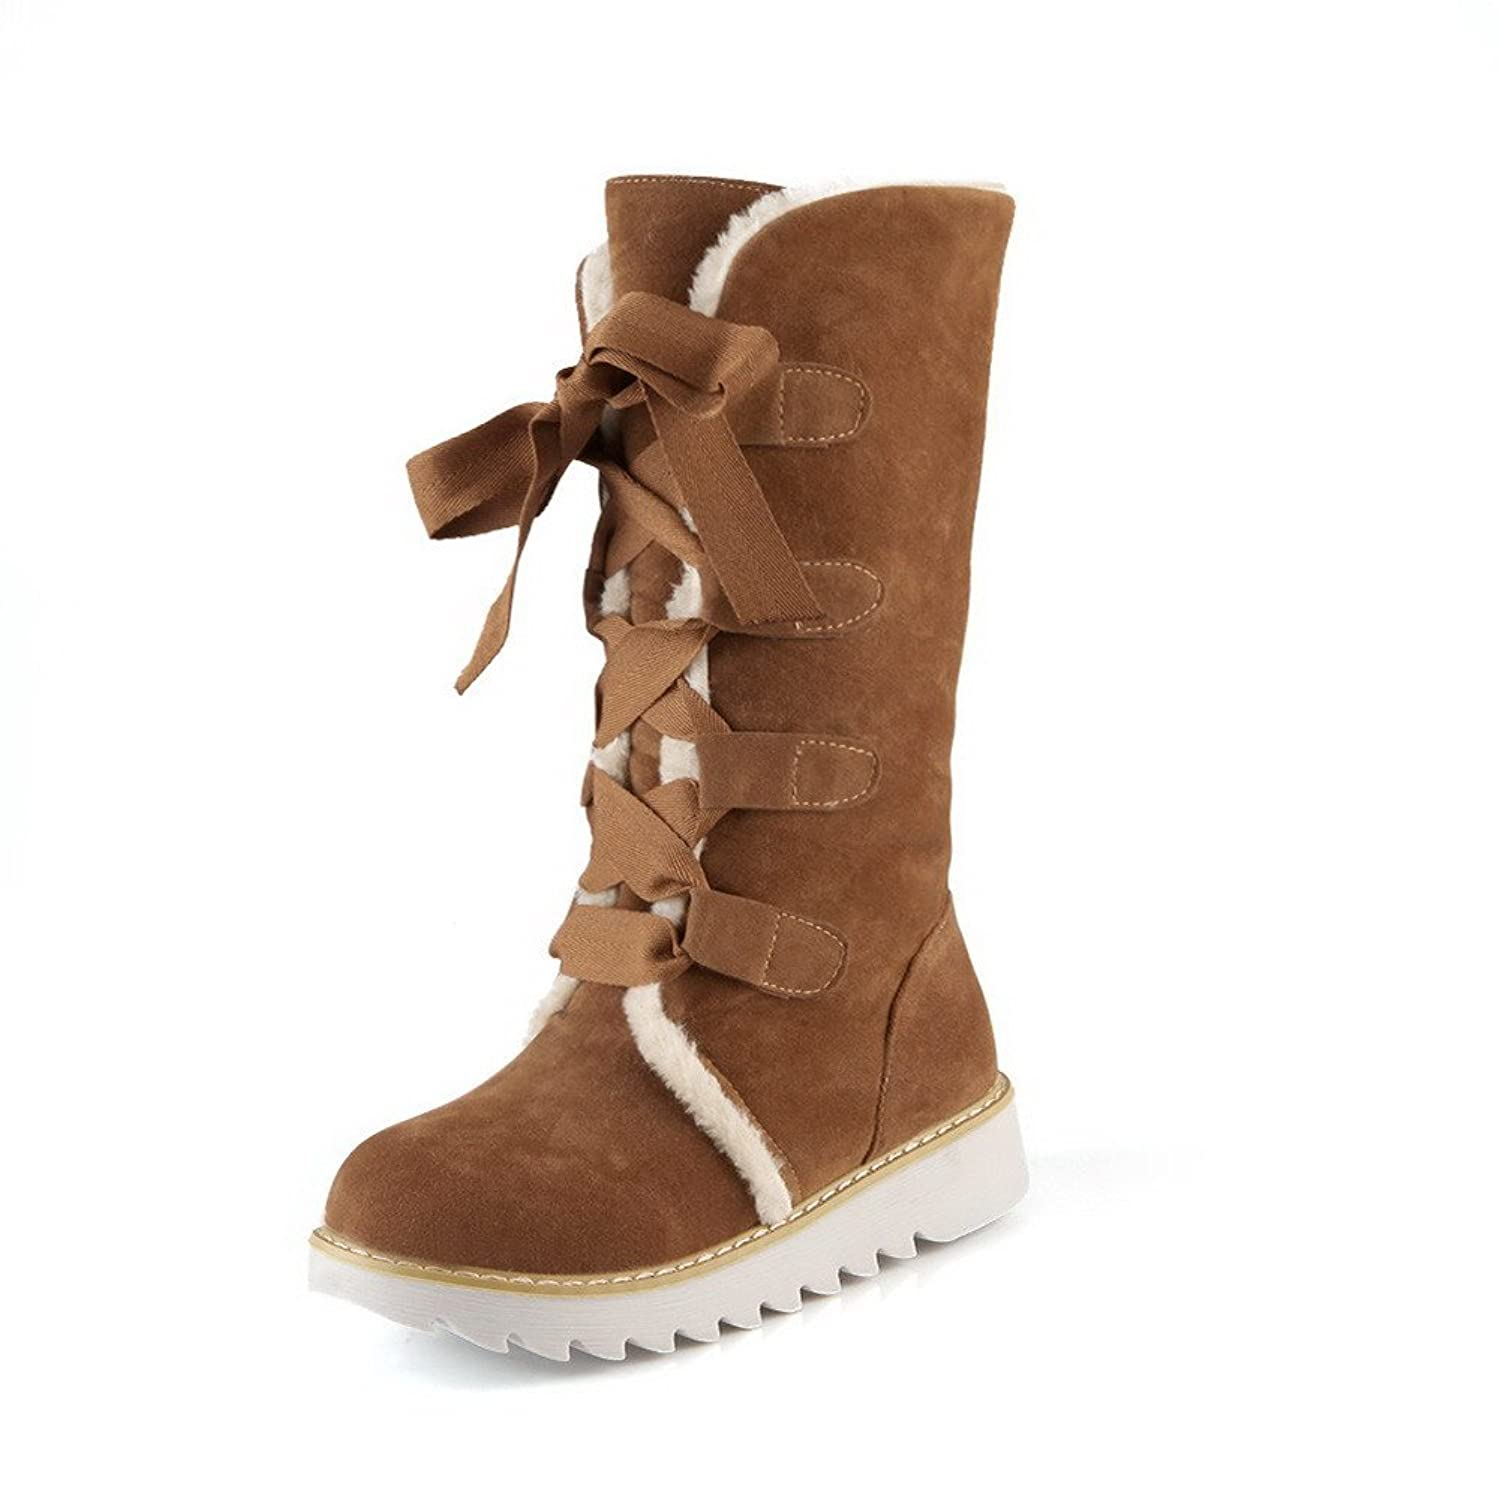 WeiPoot Women's Low-Heels Solid Round Closed Toe Frosted Lace-up Boots